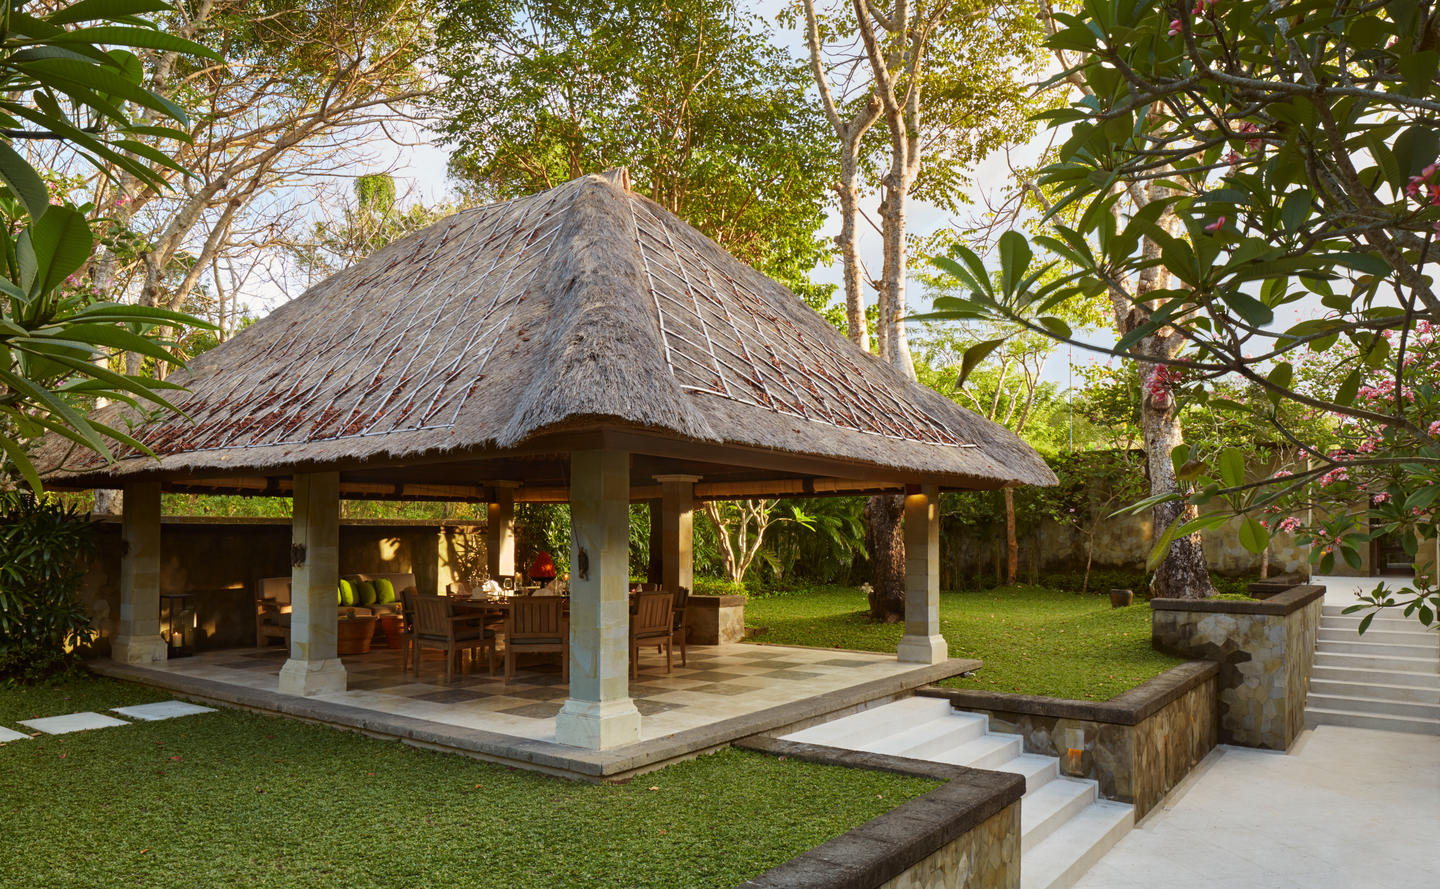 Aman Villas at Nusa Dua, Indonesia - Villa dining bale